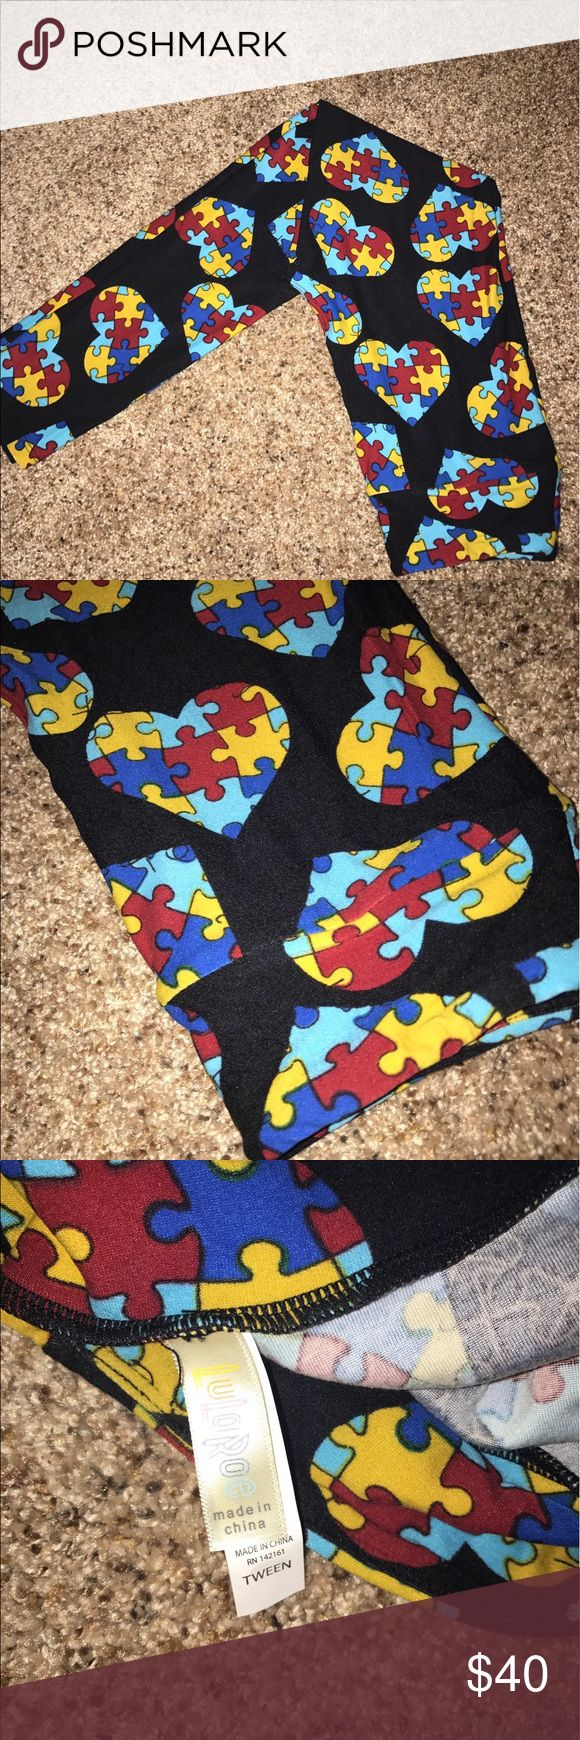 Lularoe leggings nwot tween Autism puzzle pieces Lularoe leggings nwot tween Autism puzzle pieces LuLaRoe Pants Leggings